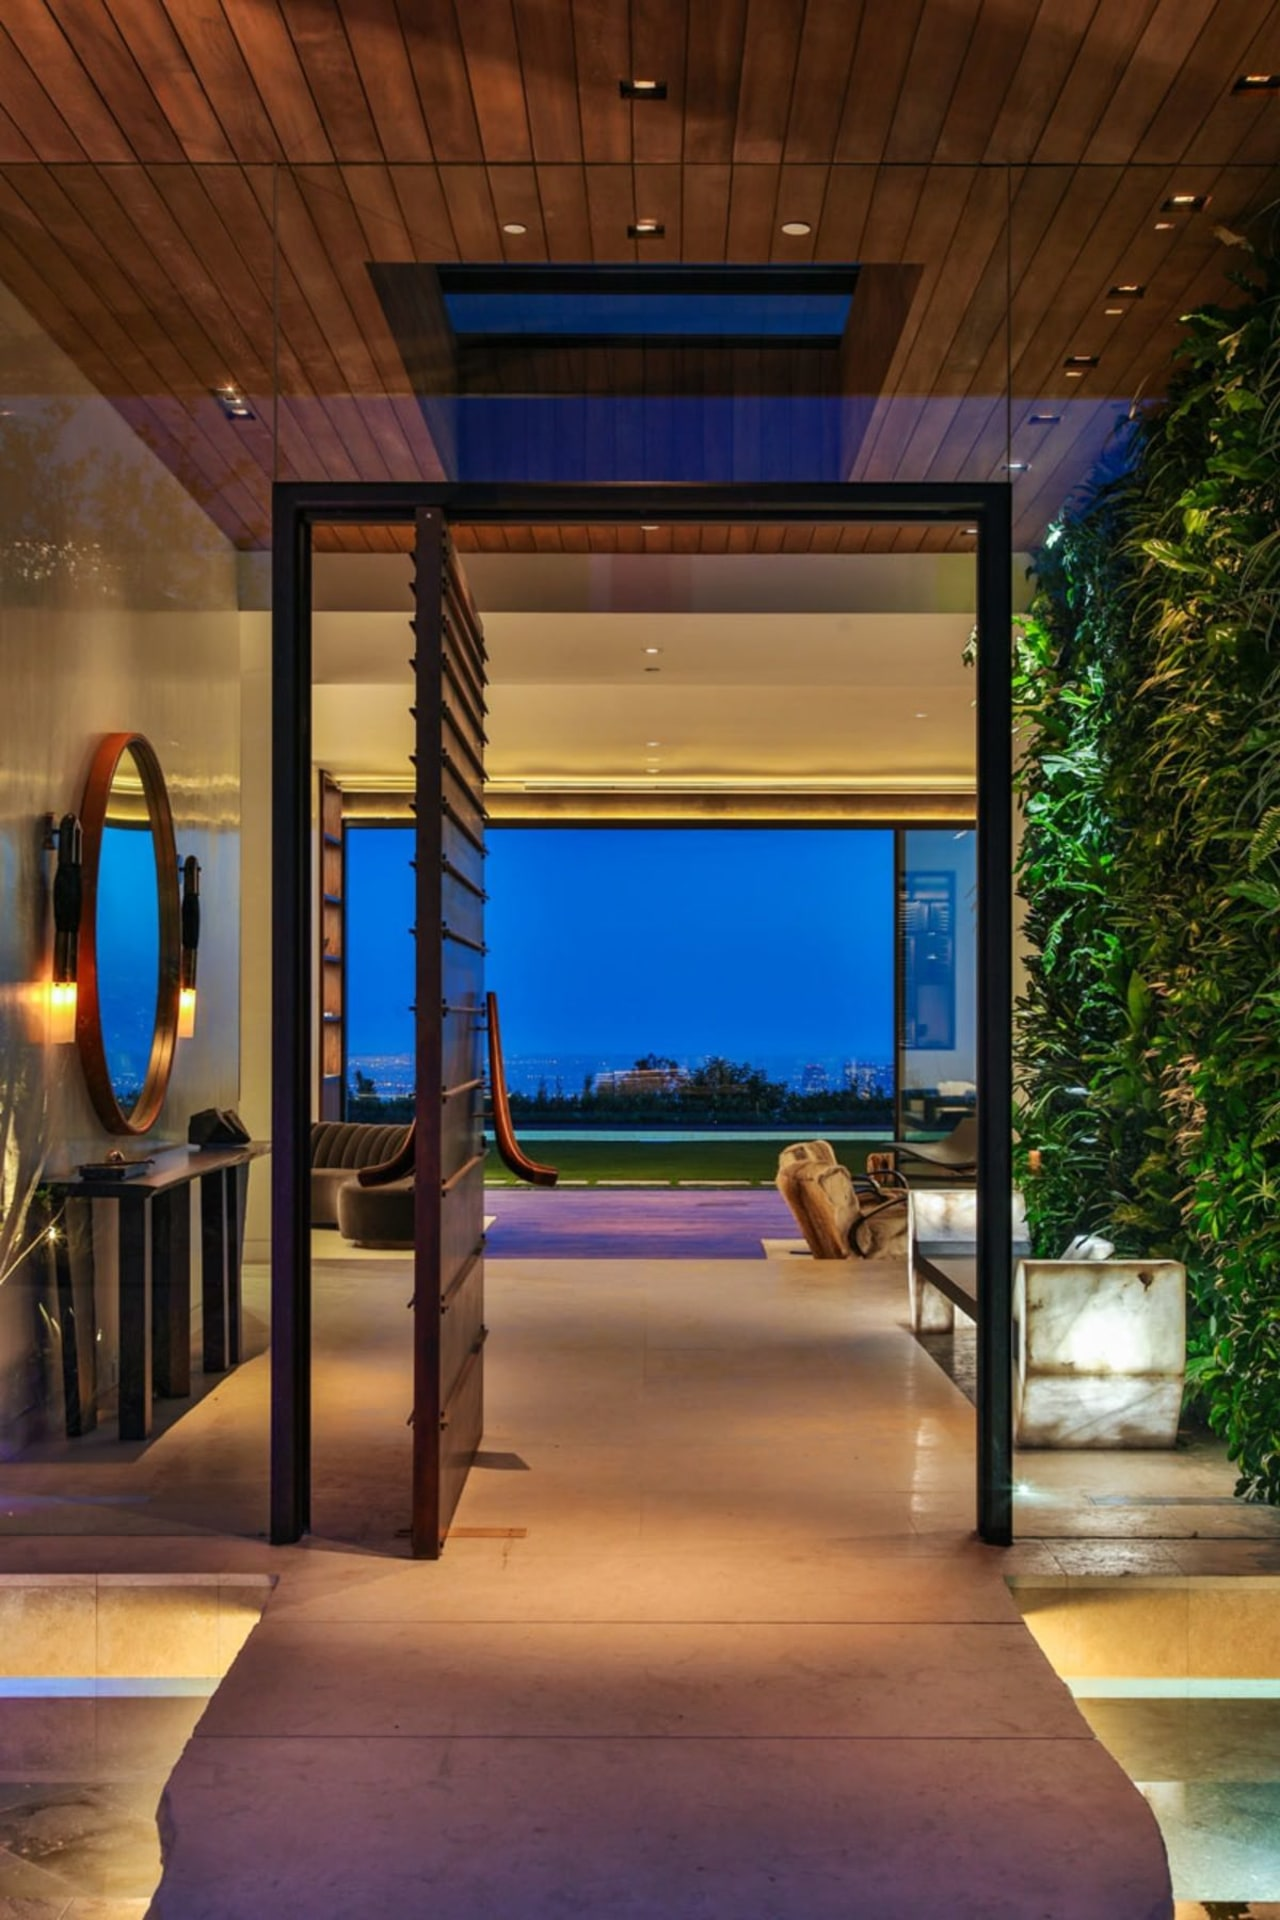 A large pivoting wooden door welcomes you architecture, ceiling, estate, home, house, interior design, lighting, real estate, brown